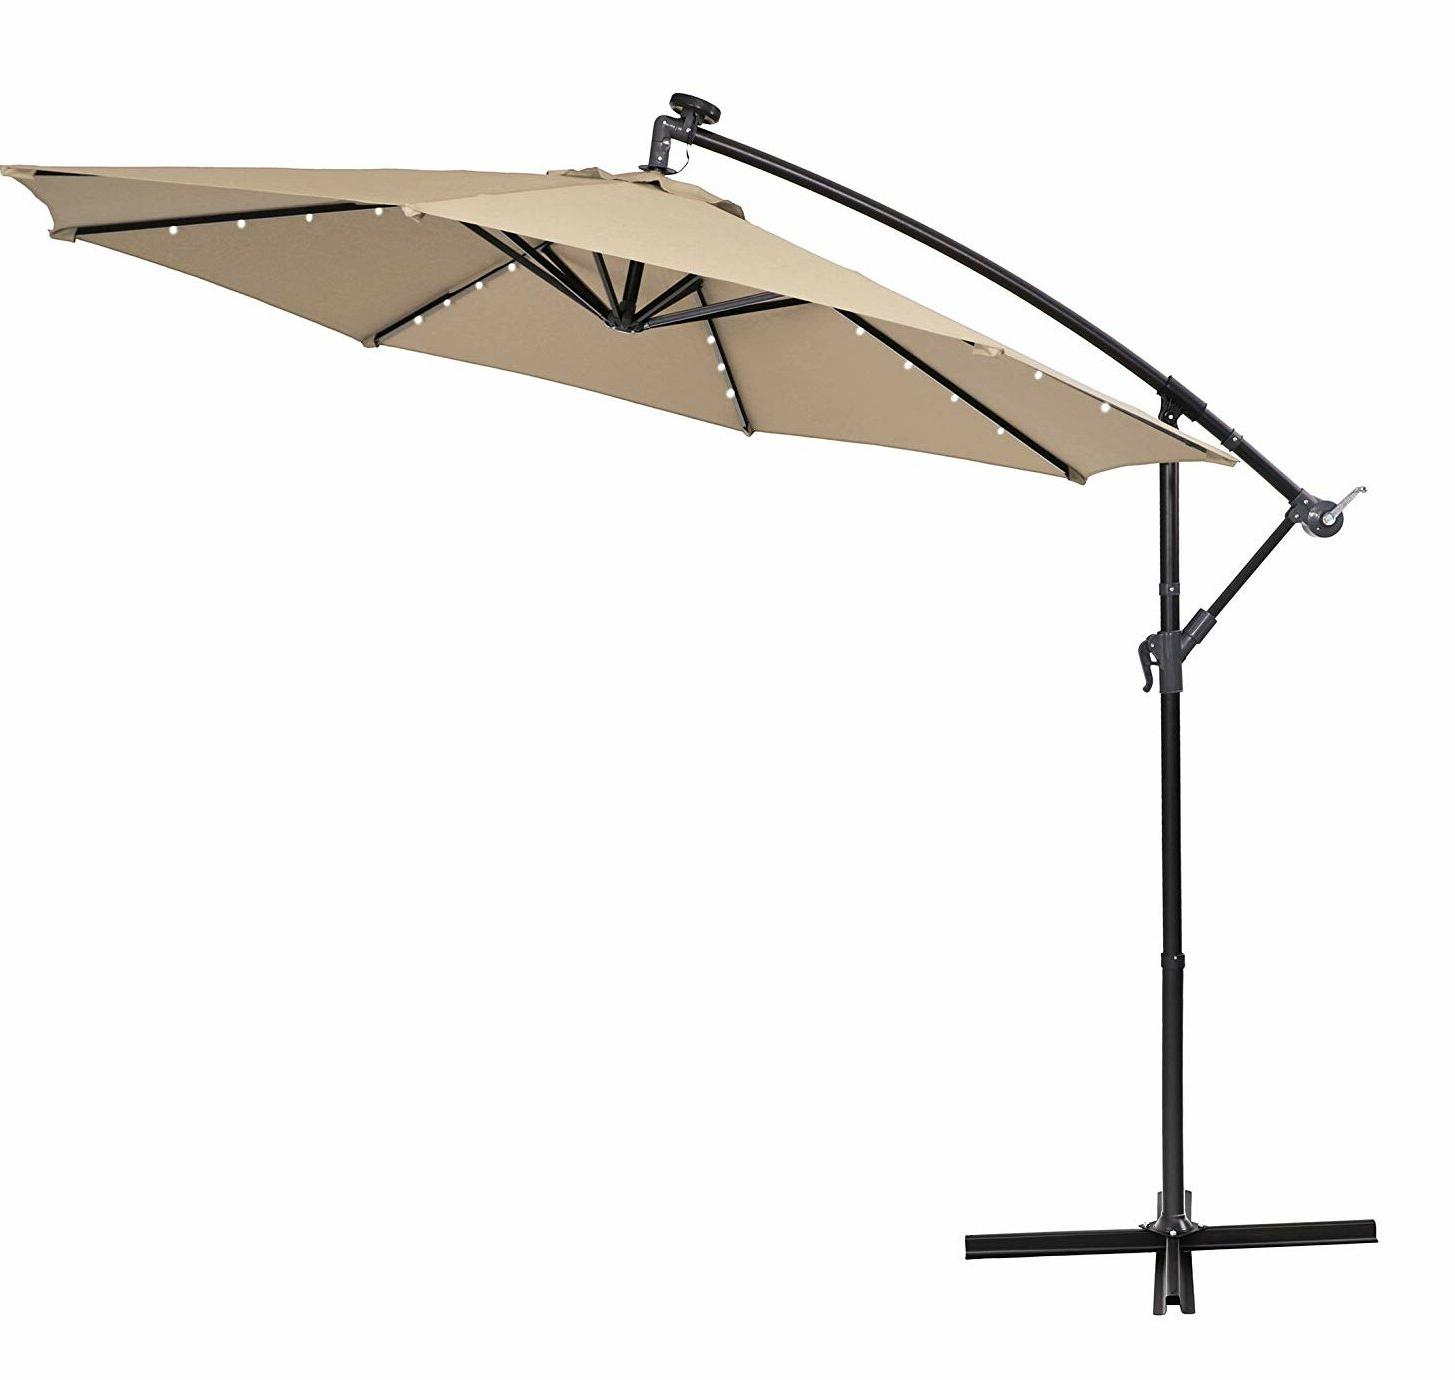 Annabelle Market Umbrellas Regarding Recent Phi Villa 10' Cantilever Umbrella & Reviews (View 7 of 20)